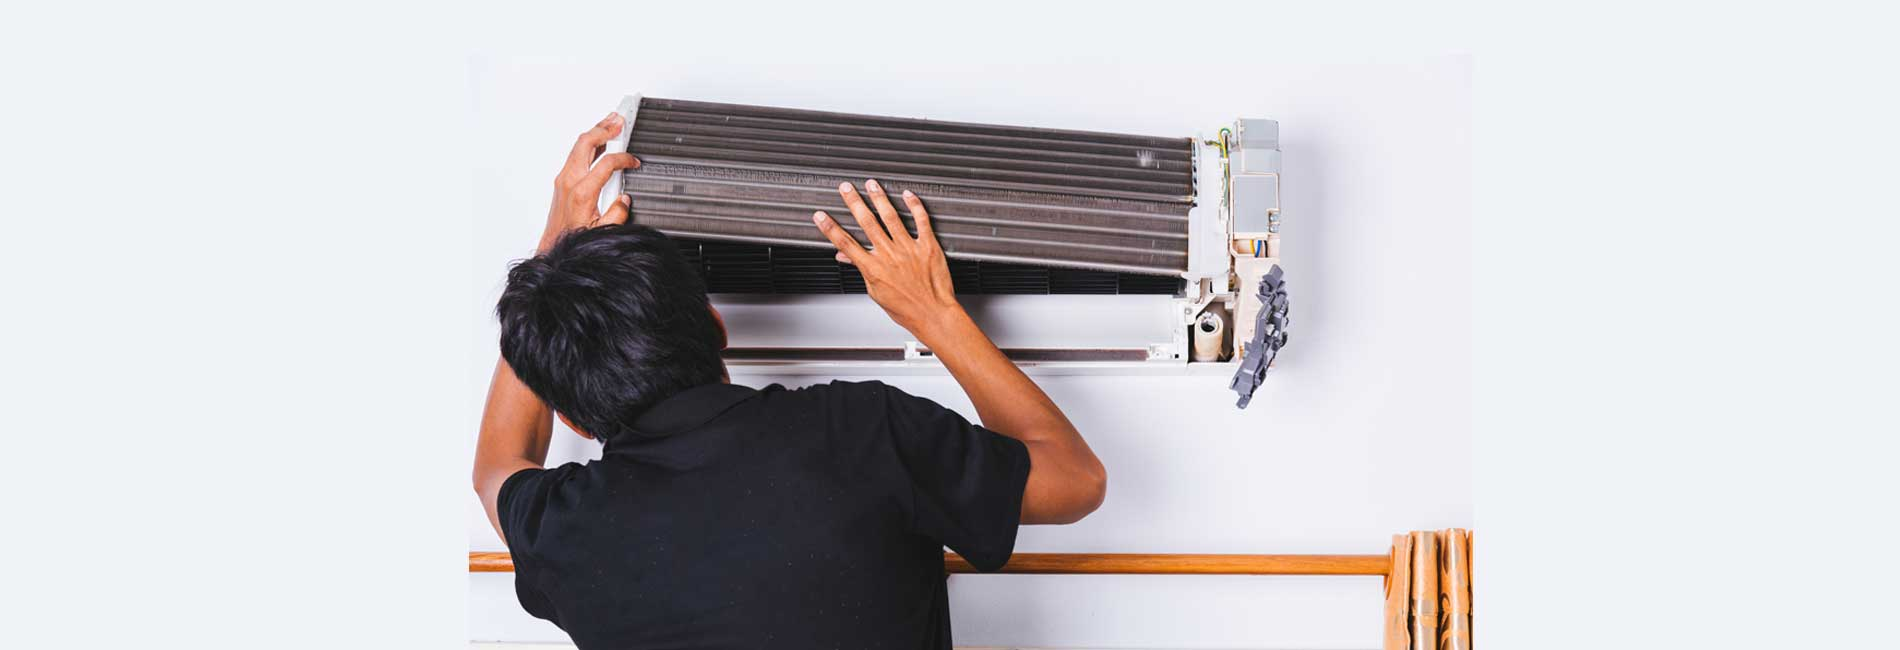 Air Condition Repair in Palavakkam